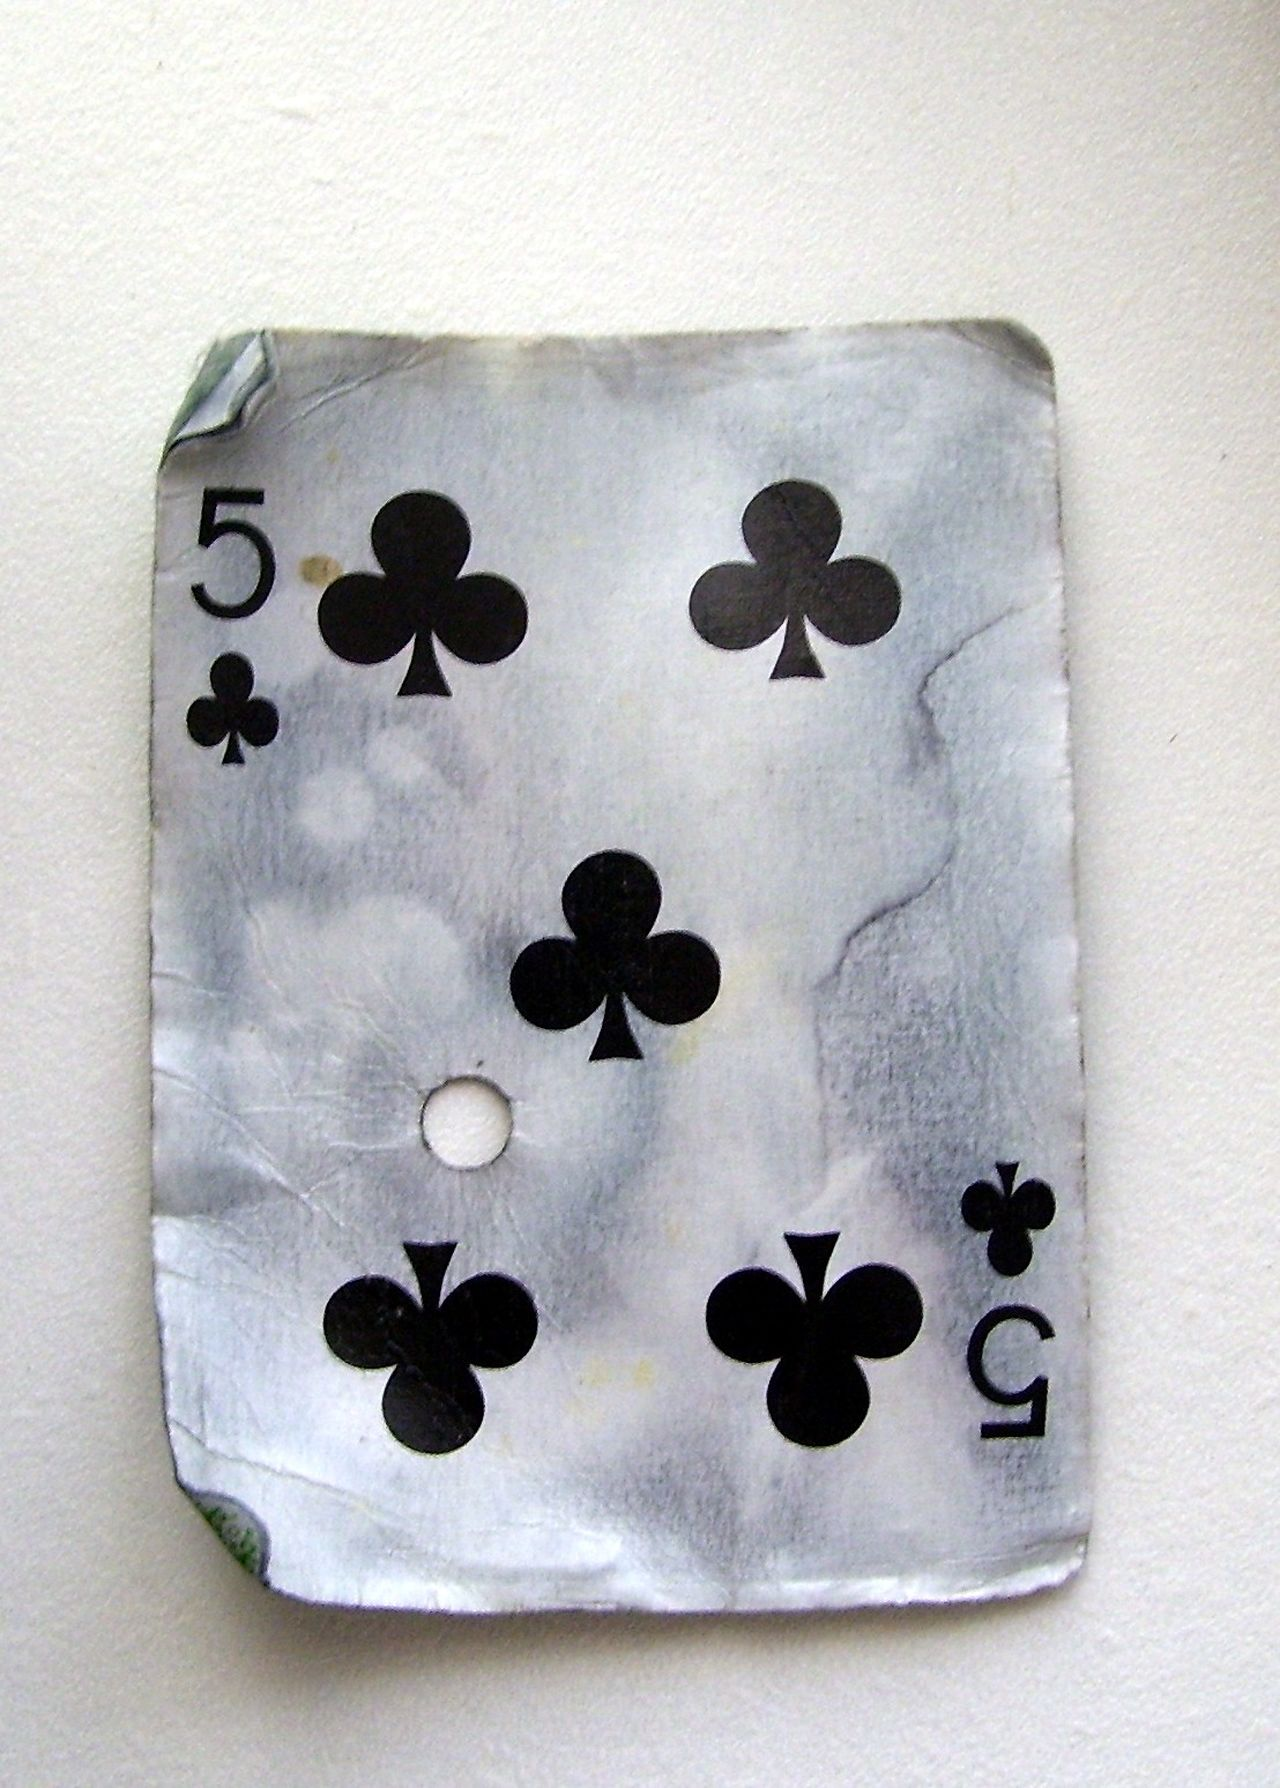 Casino Discard Playing Card Black Suit Card Game Cards Discarded Five Of Clubs Found Object Game Of Chance Playing Card Worn